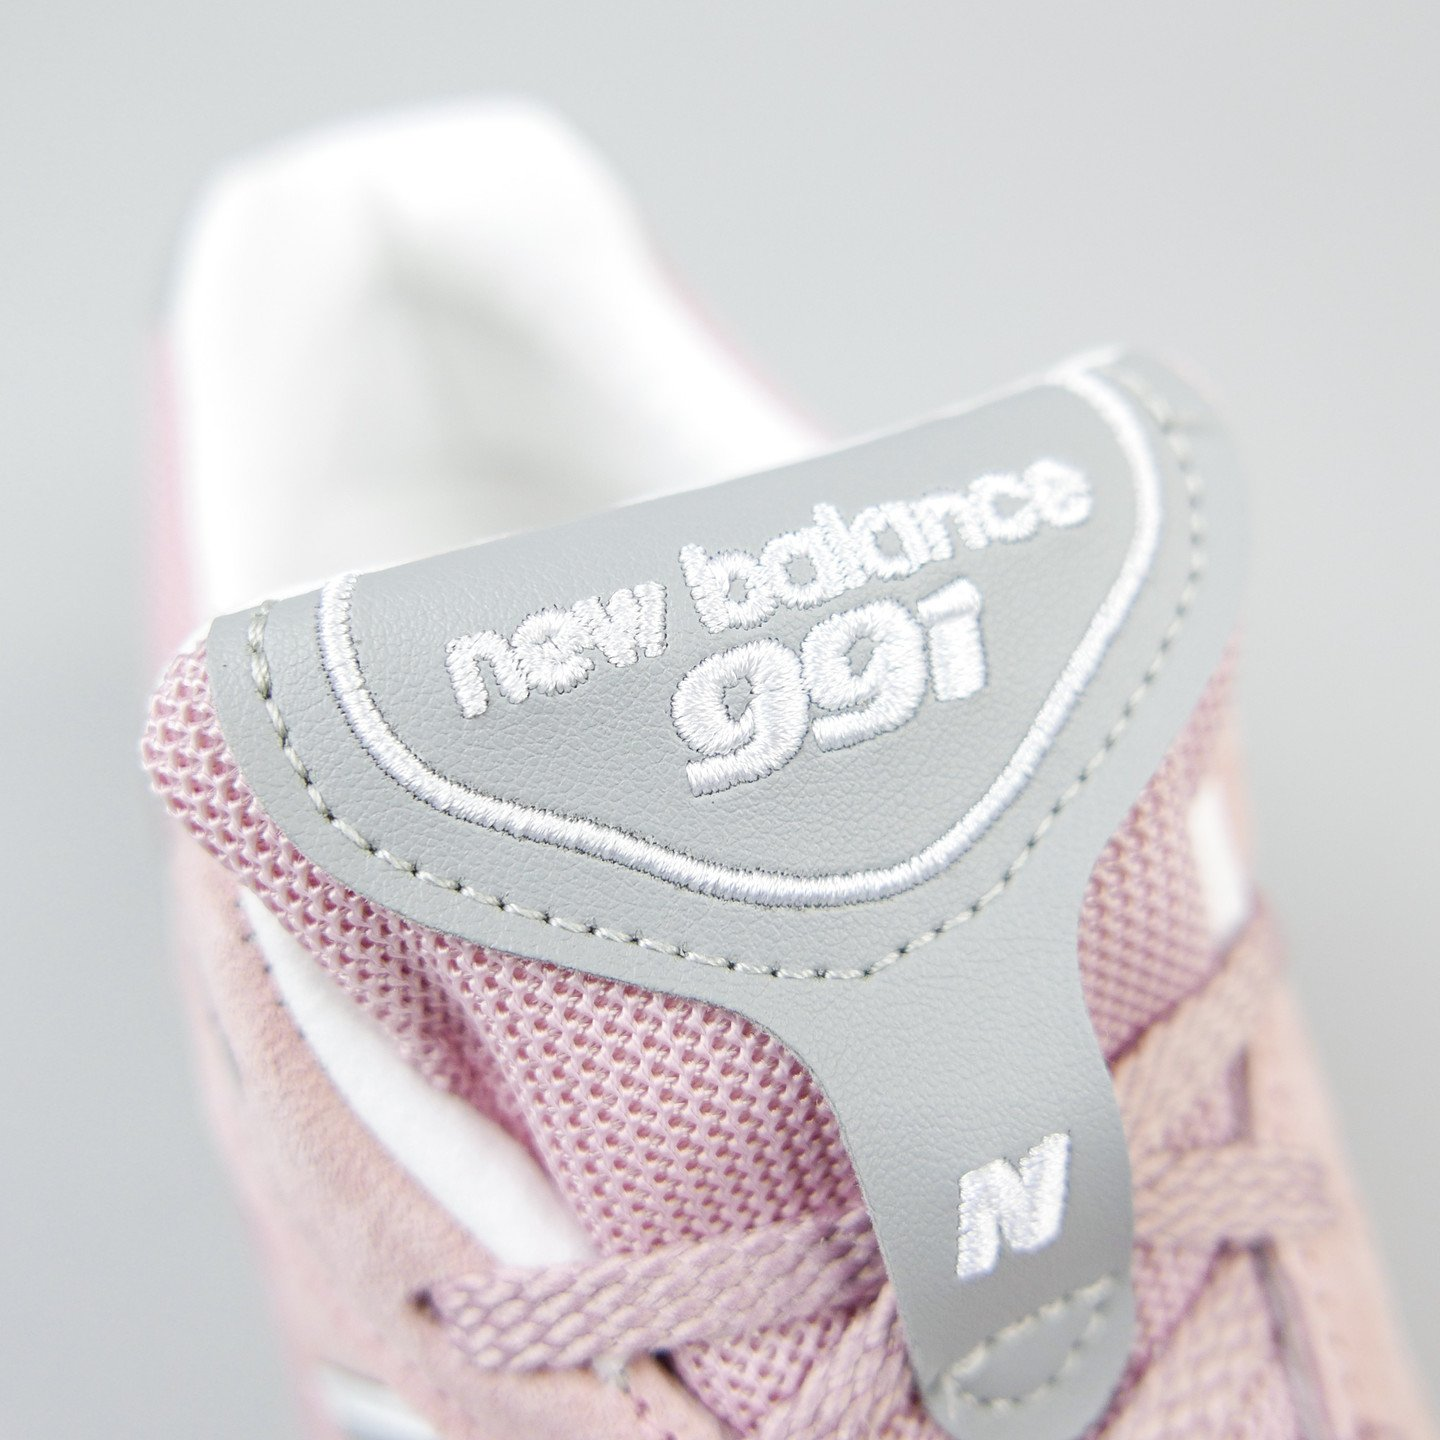 New Balance W991 PNK - Made in UK Shy Pink / Light Grey W991PNK